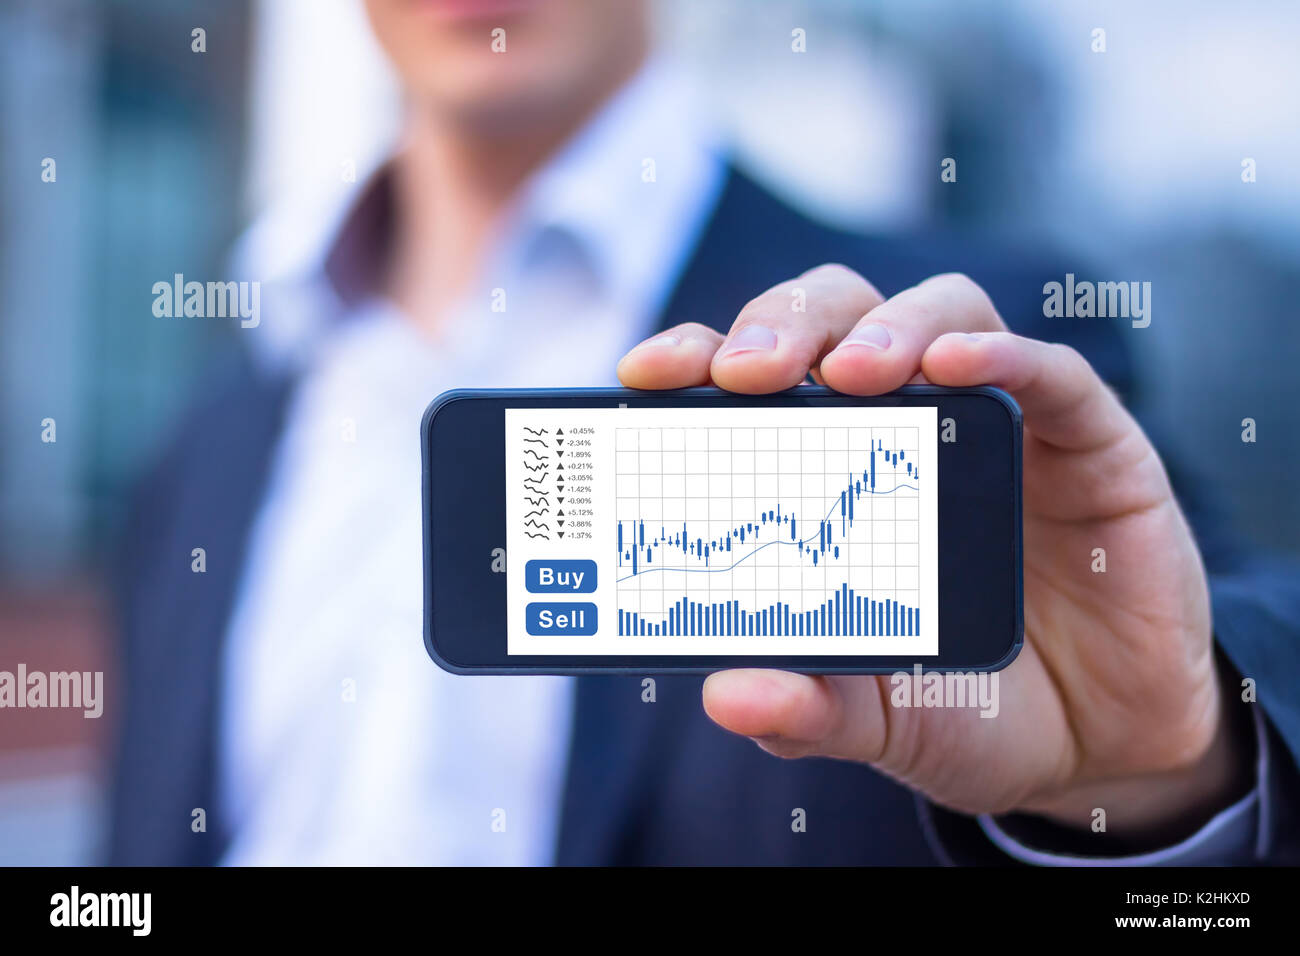 Trader showing smartphone screen with trading interface dashboard with candlestick chart, quotes and buy sell buttons, stock exchange and fintech conc - Stock Image